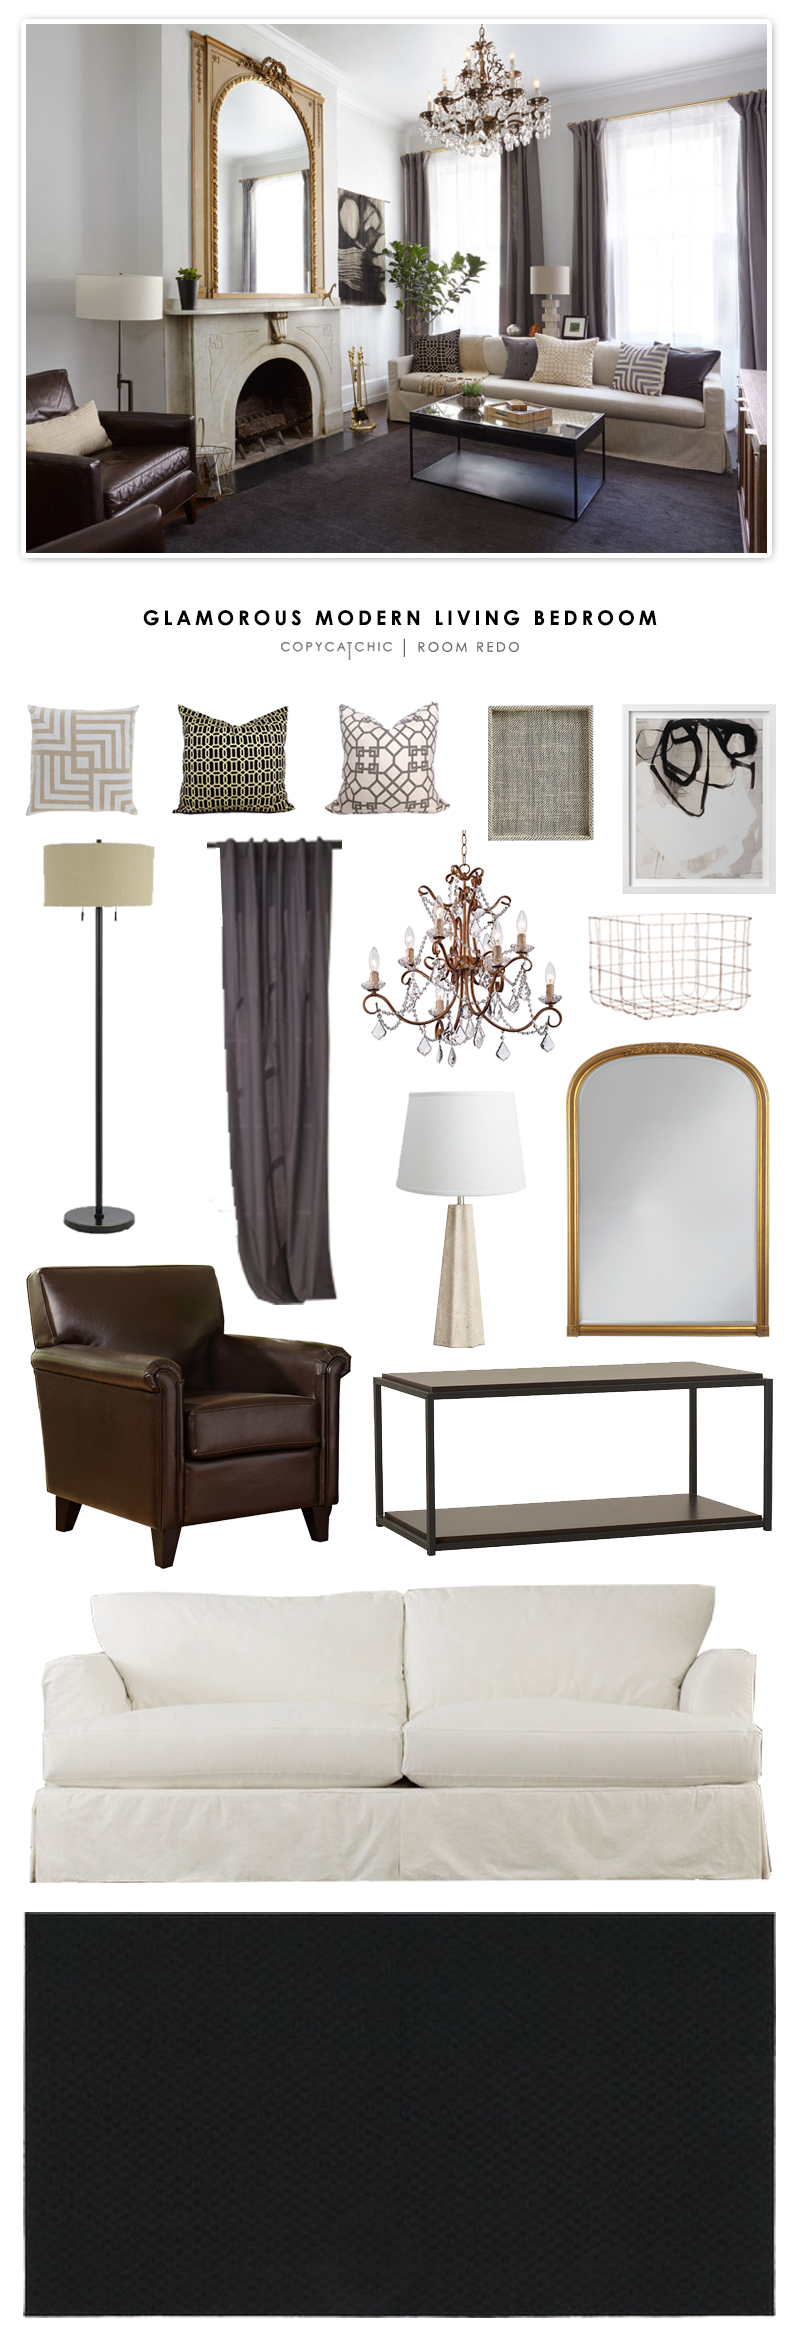 Copy cat chic room redo glamorous modern living room for Glam modern living room